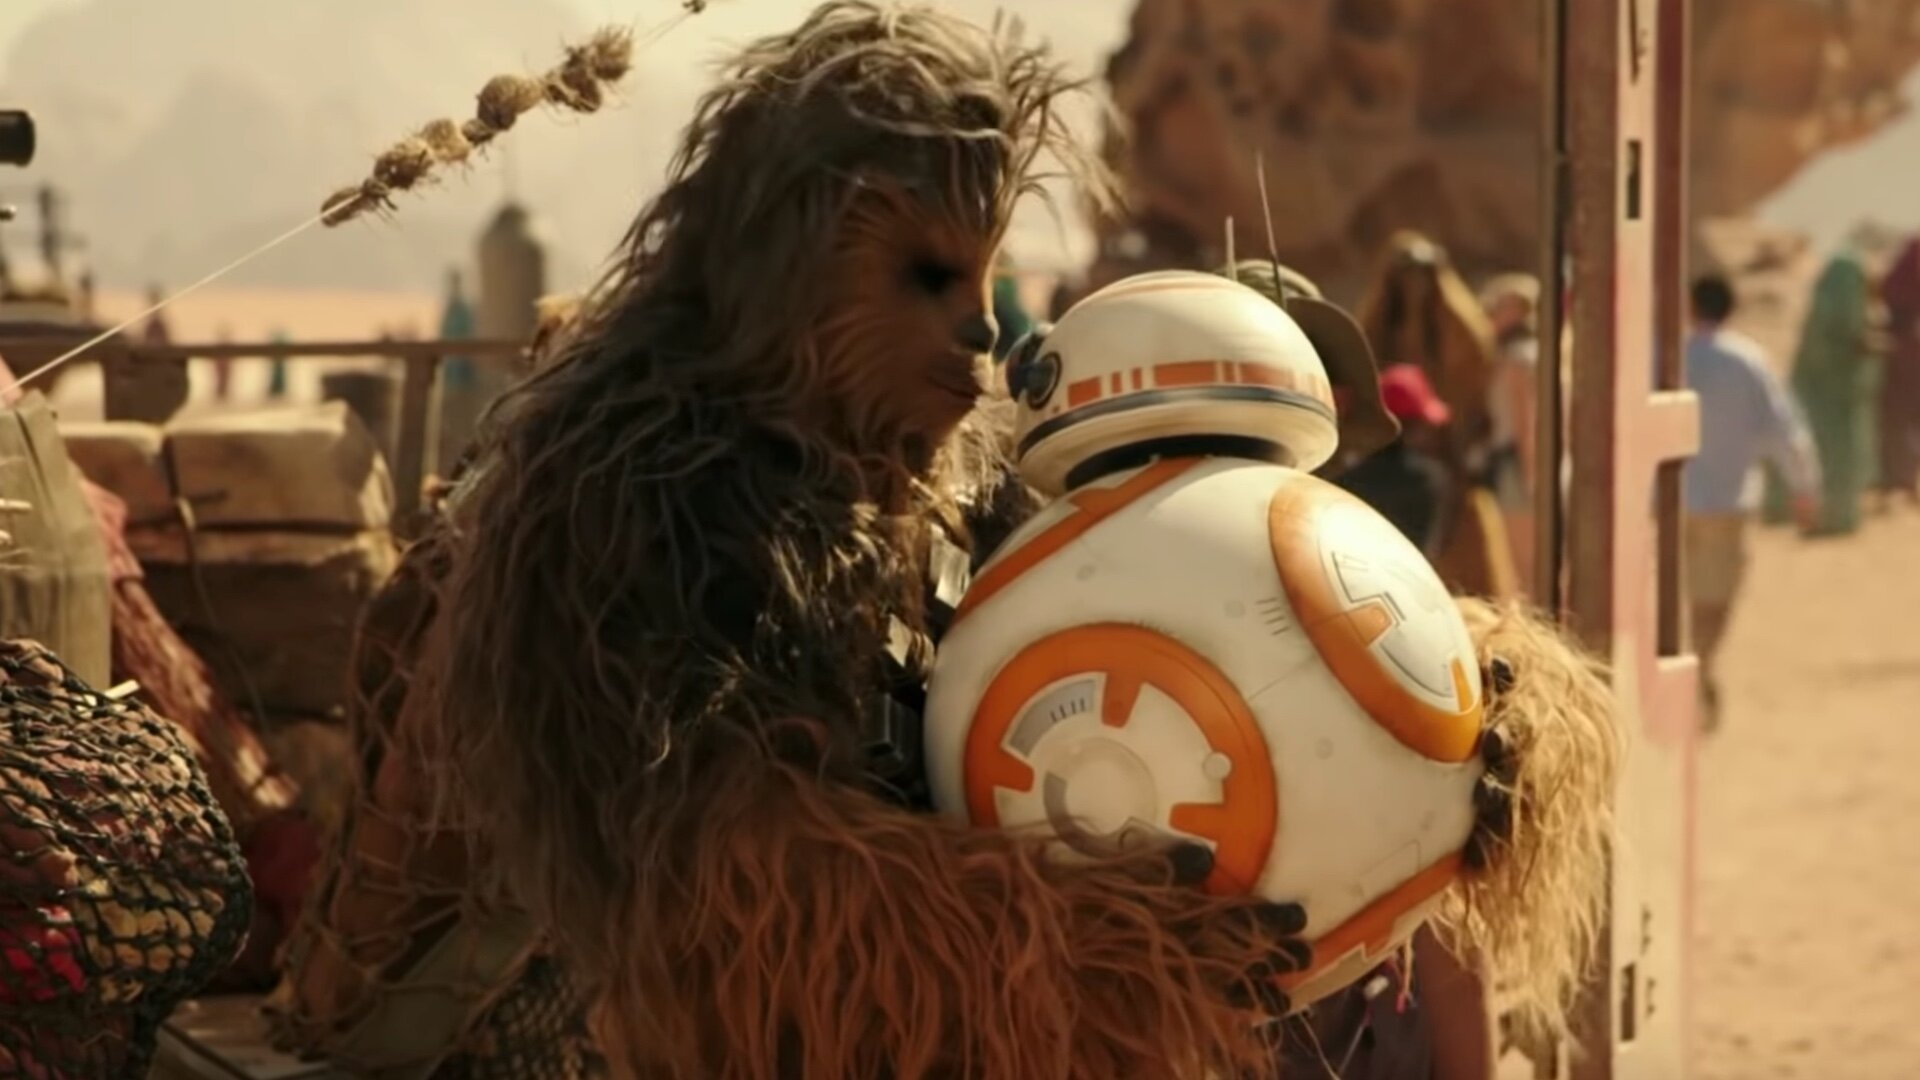 Behind The Scenes Footage From Star Wars The Rise Of Skywalker Gives Us A Look At The Making Of The Film Geektyrant